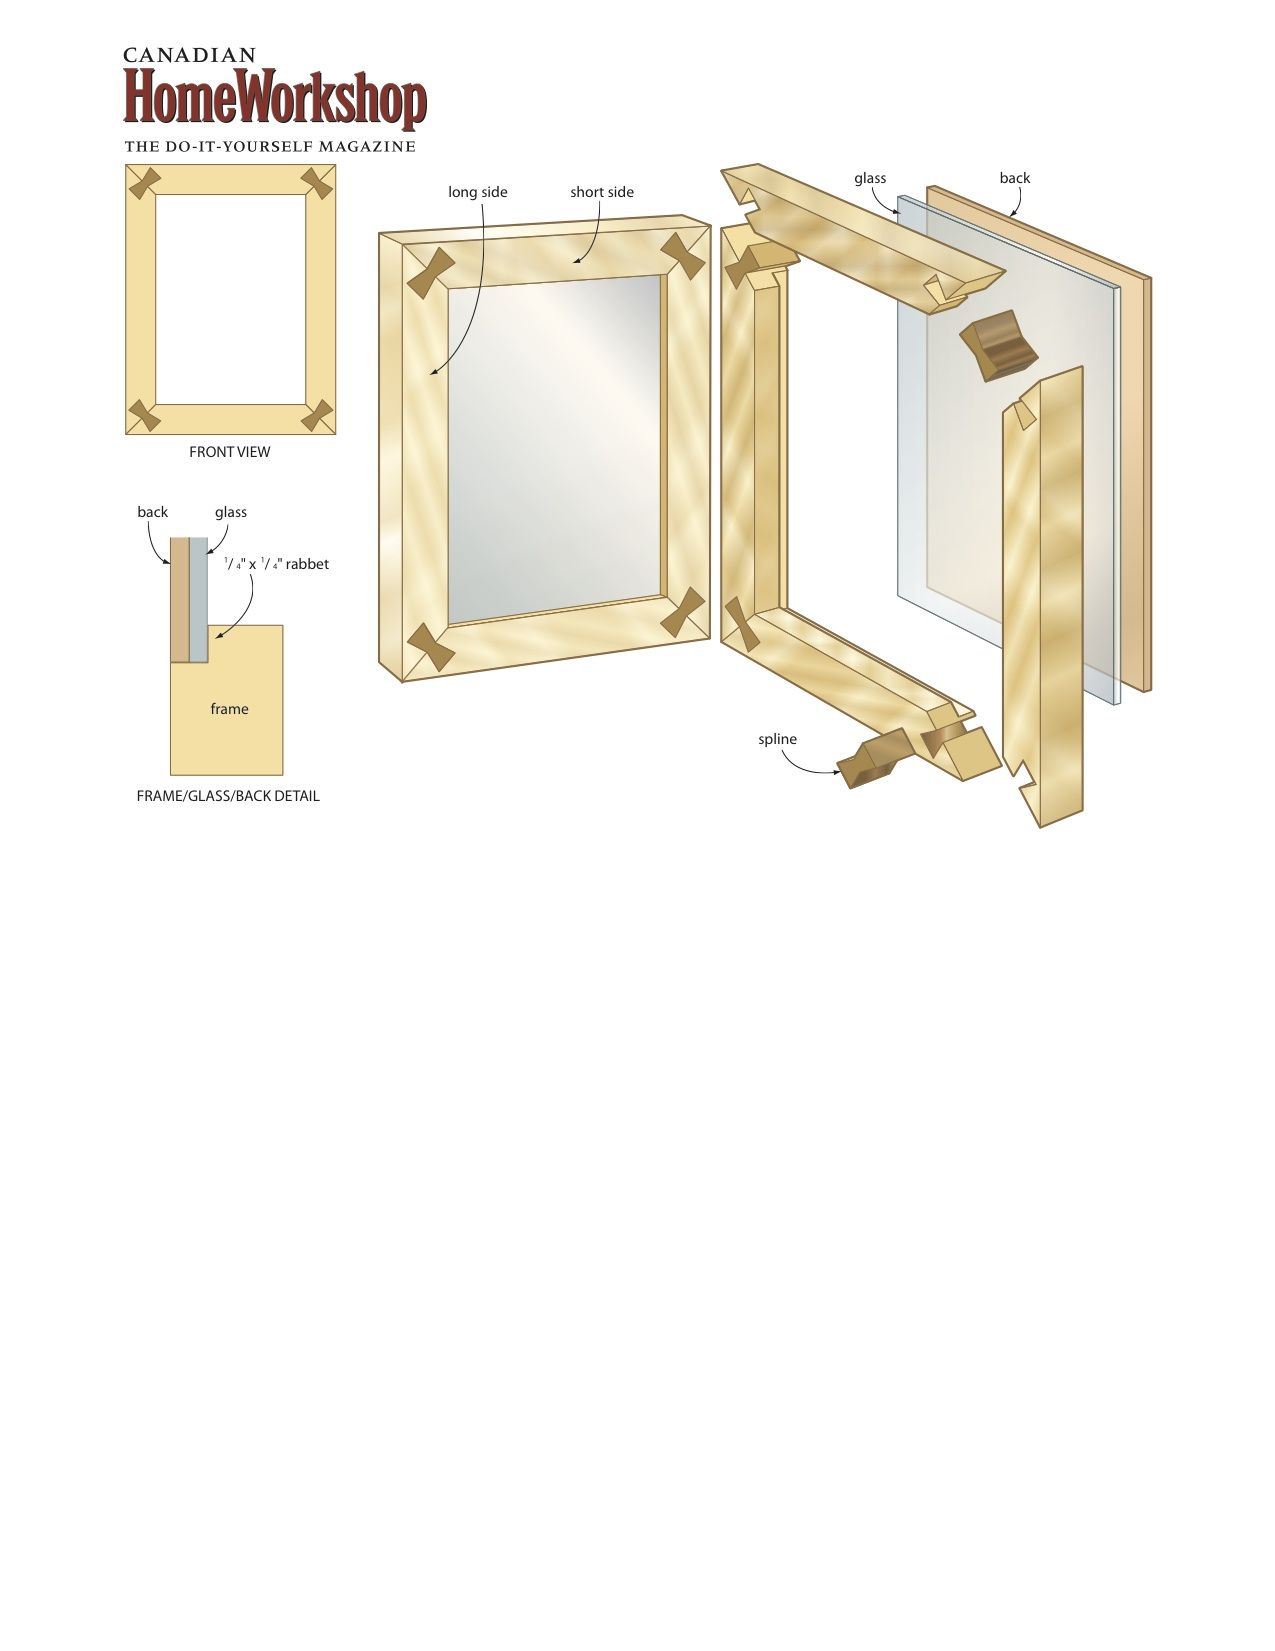 Turn Old Pallets Into Picture Frames Canadian Home Workshop Home Workshop Pallet Picture Frames Diy Picture Frames